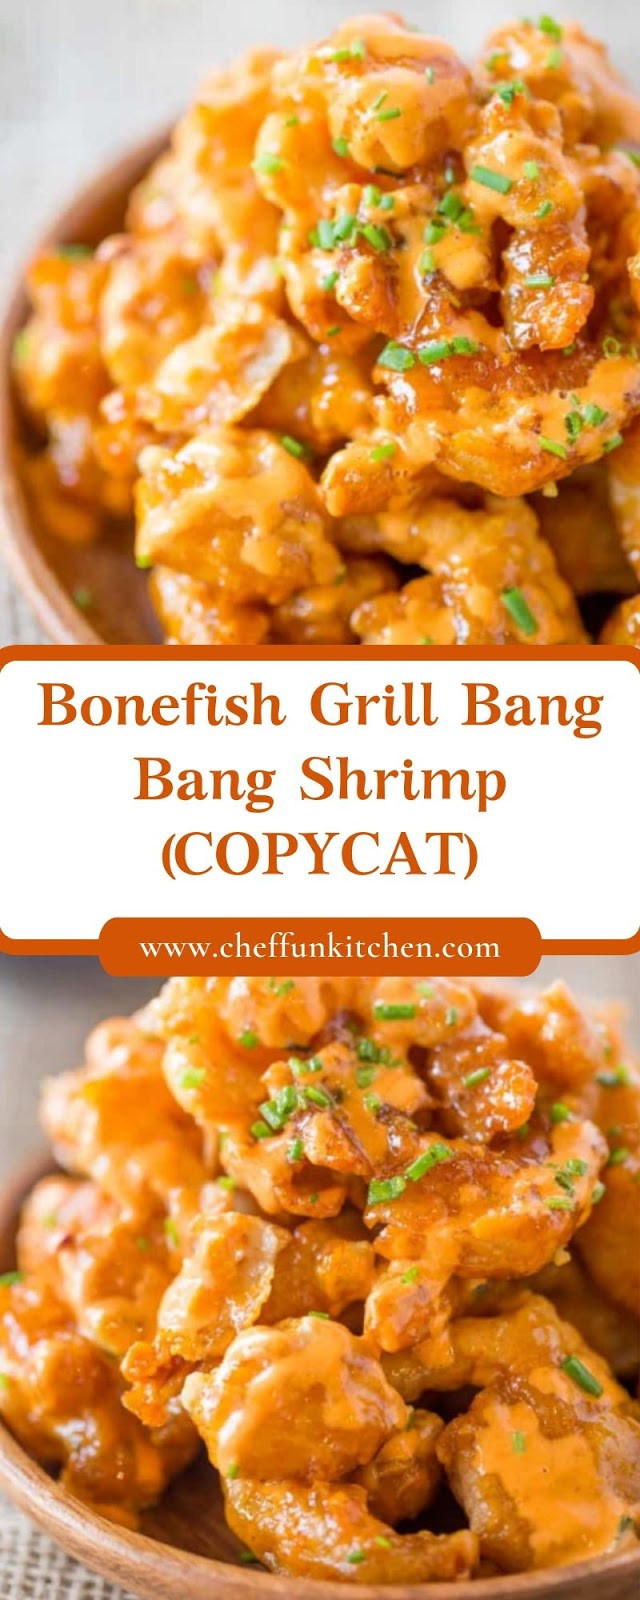 Bonefish Grill Bang Bang Shrimp (Copycat)